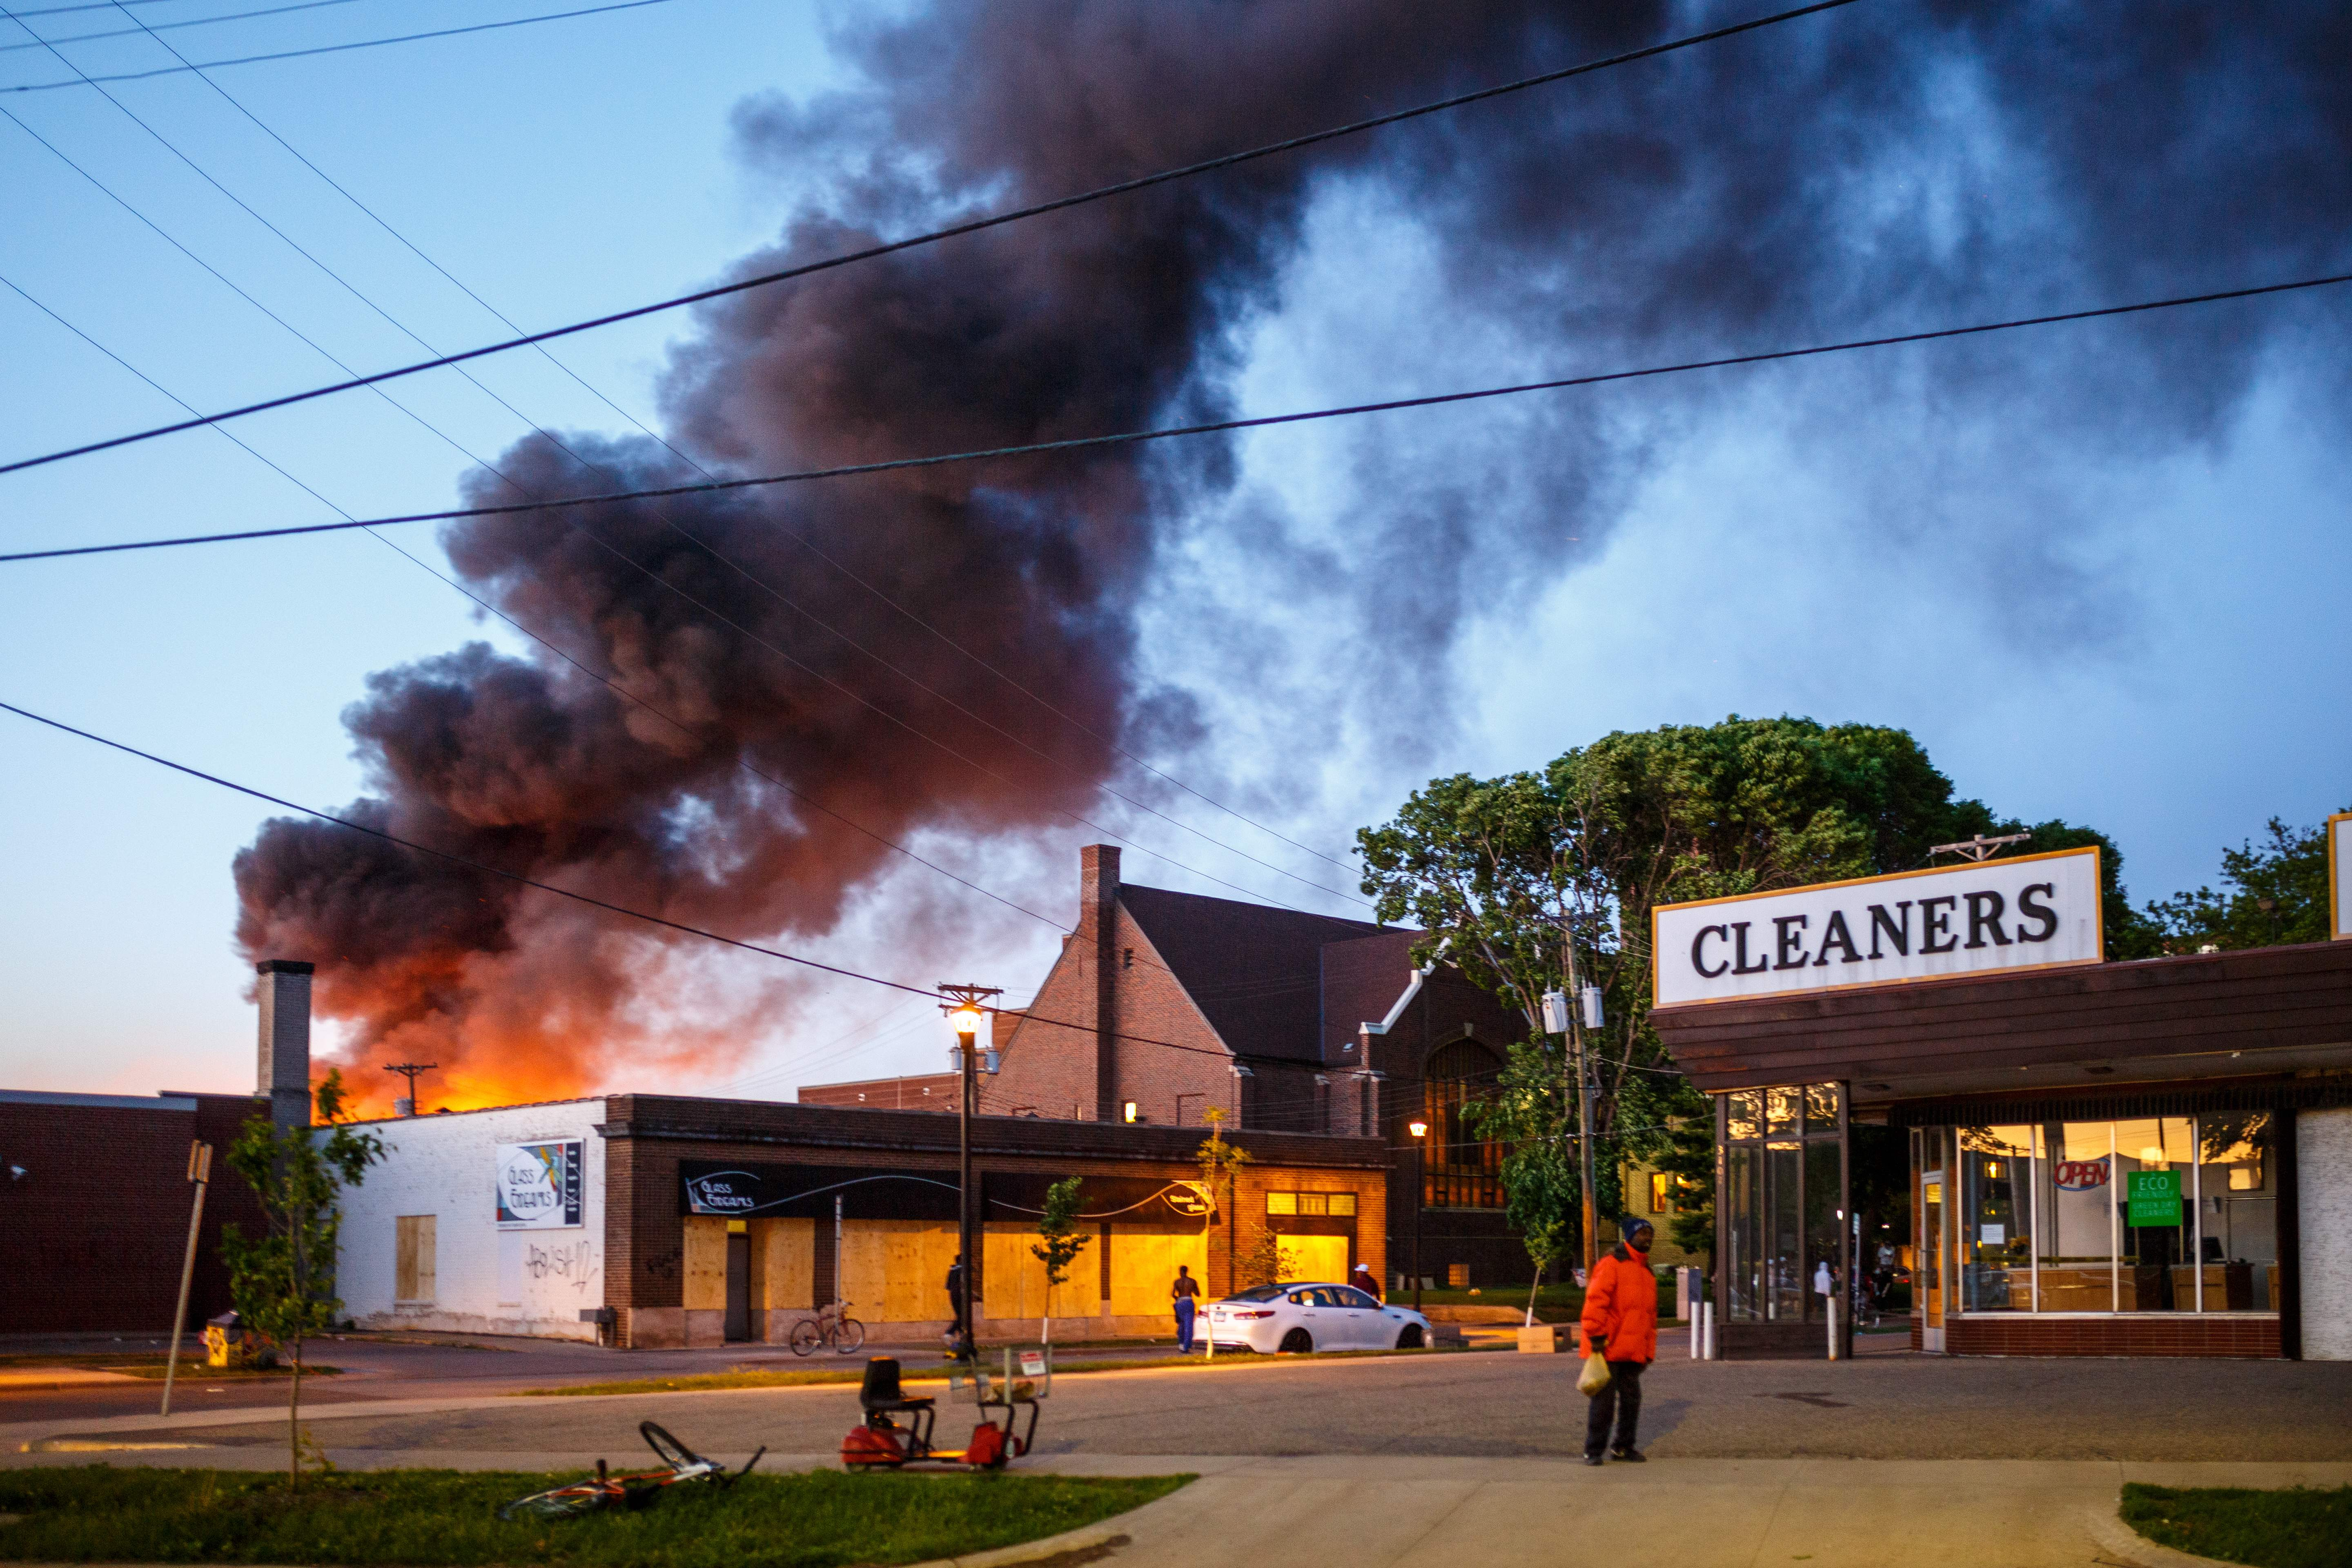 Flames rise from the cleaners shoop near the Third Police Precinct on May 28, 2020 in Minneapolis, Minnesota, during a protest over the death of George Floyd.(Photo by KEREM YUCEL/AFP via Getty Images)